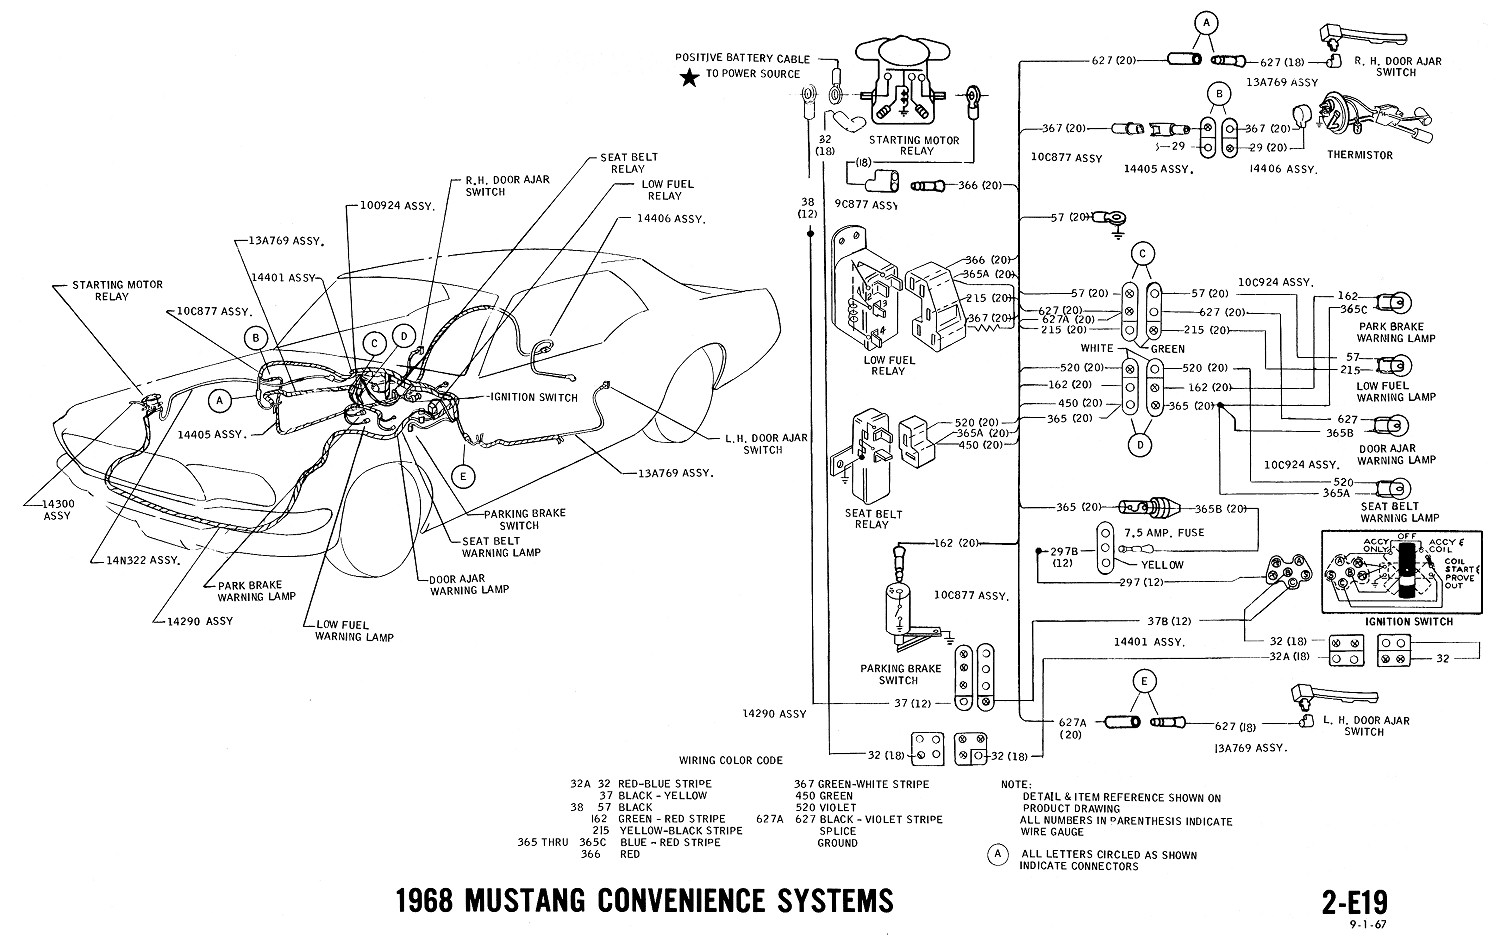 E19 1968 mustang wiring diagrams evolving software 69 cougar wiring diagram at readyjetset.co